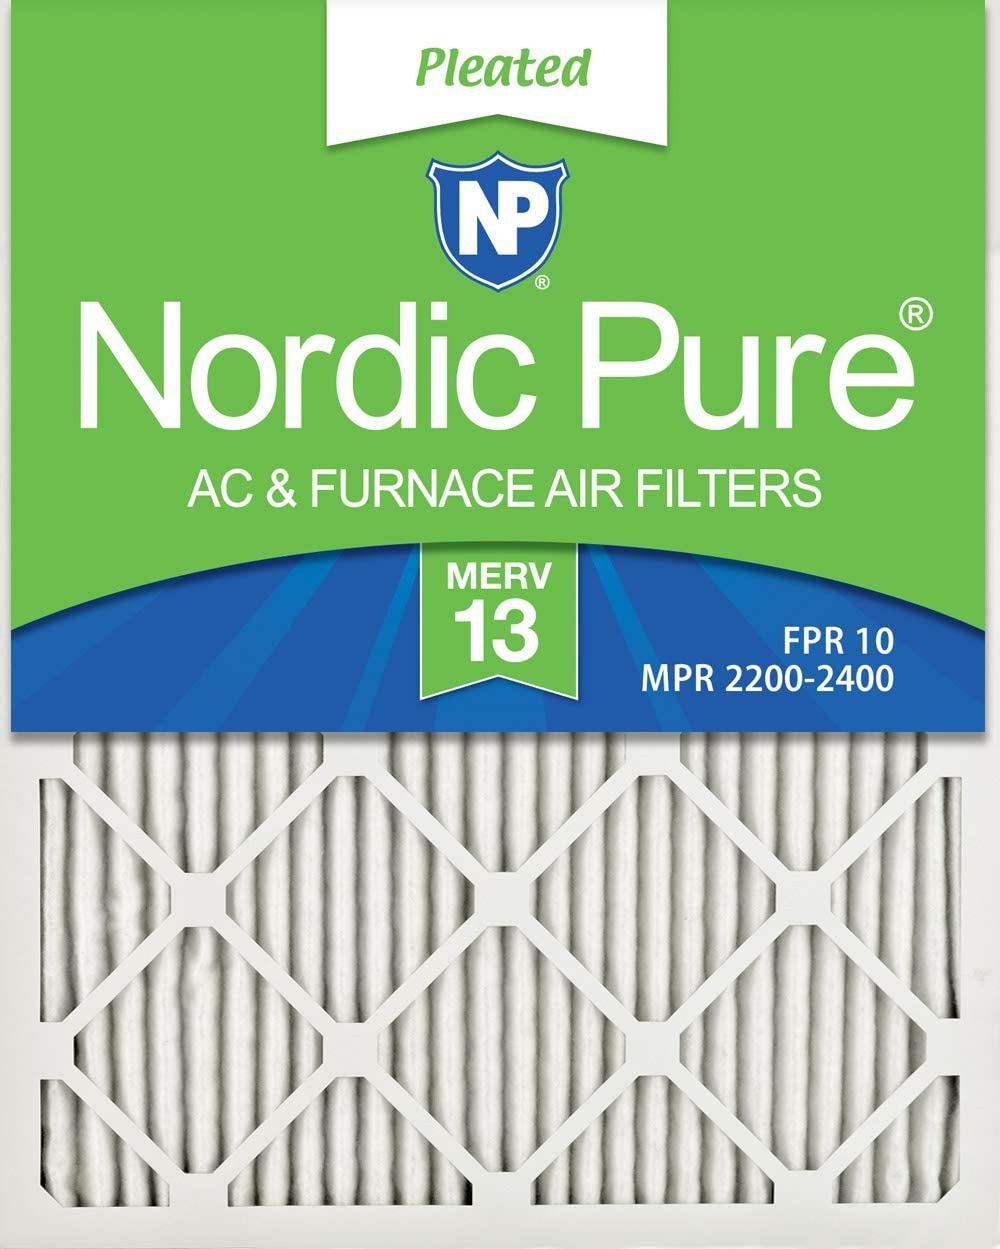 Nordic Pure 8x20x1 Exact MERV 13 Tru Mini Pleat AC Furnace Air Filters 1 Pack